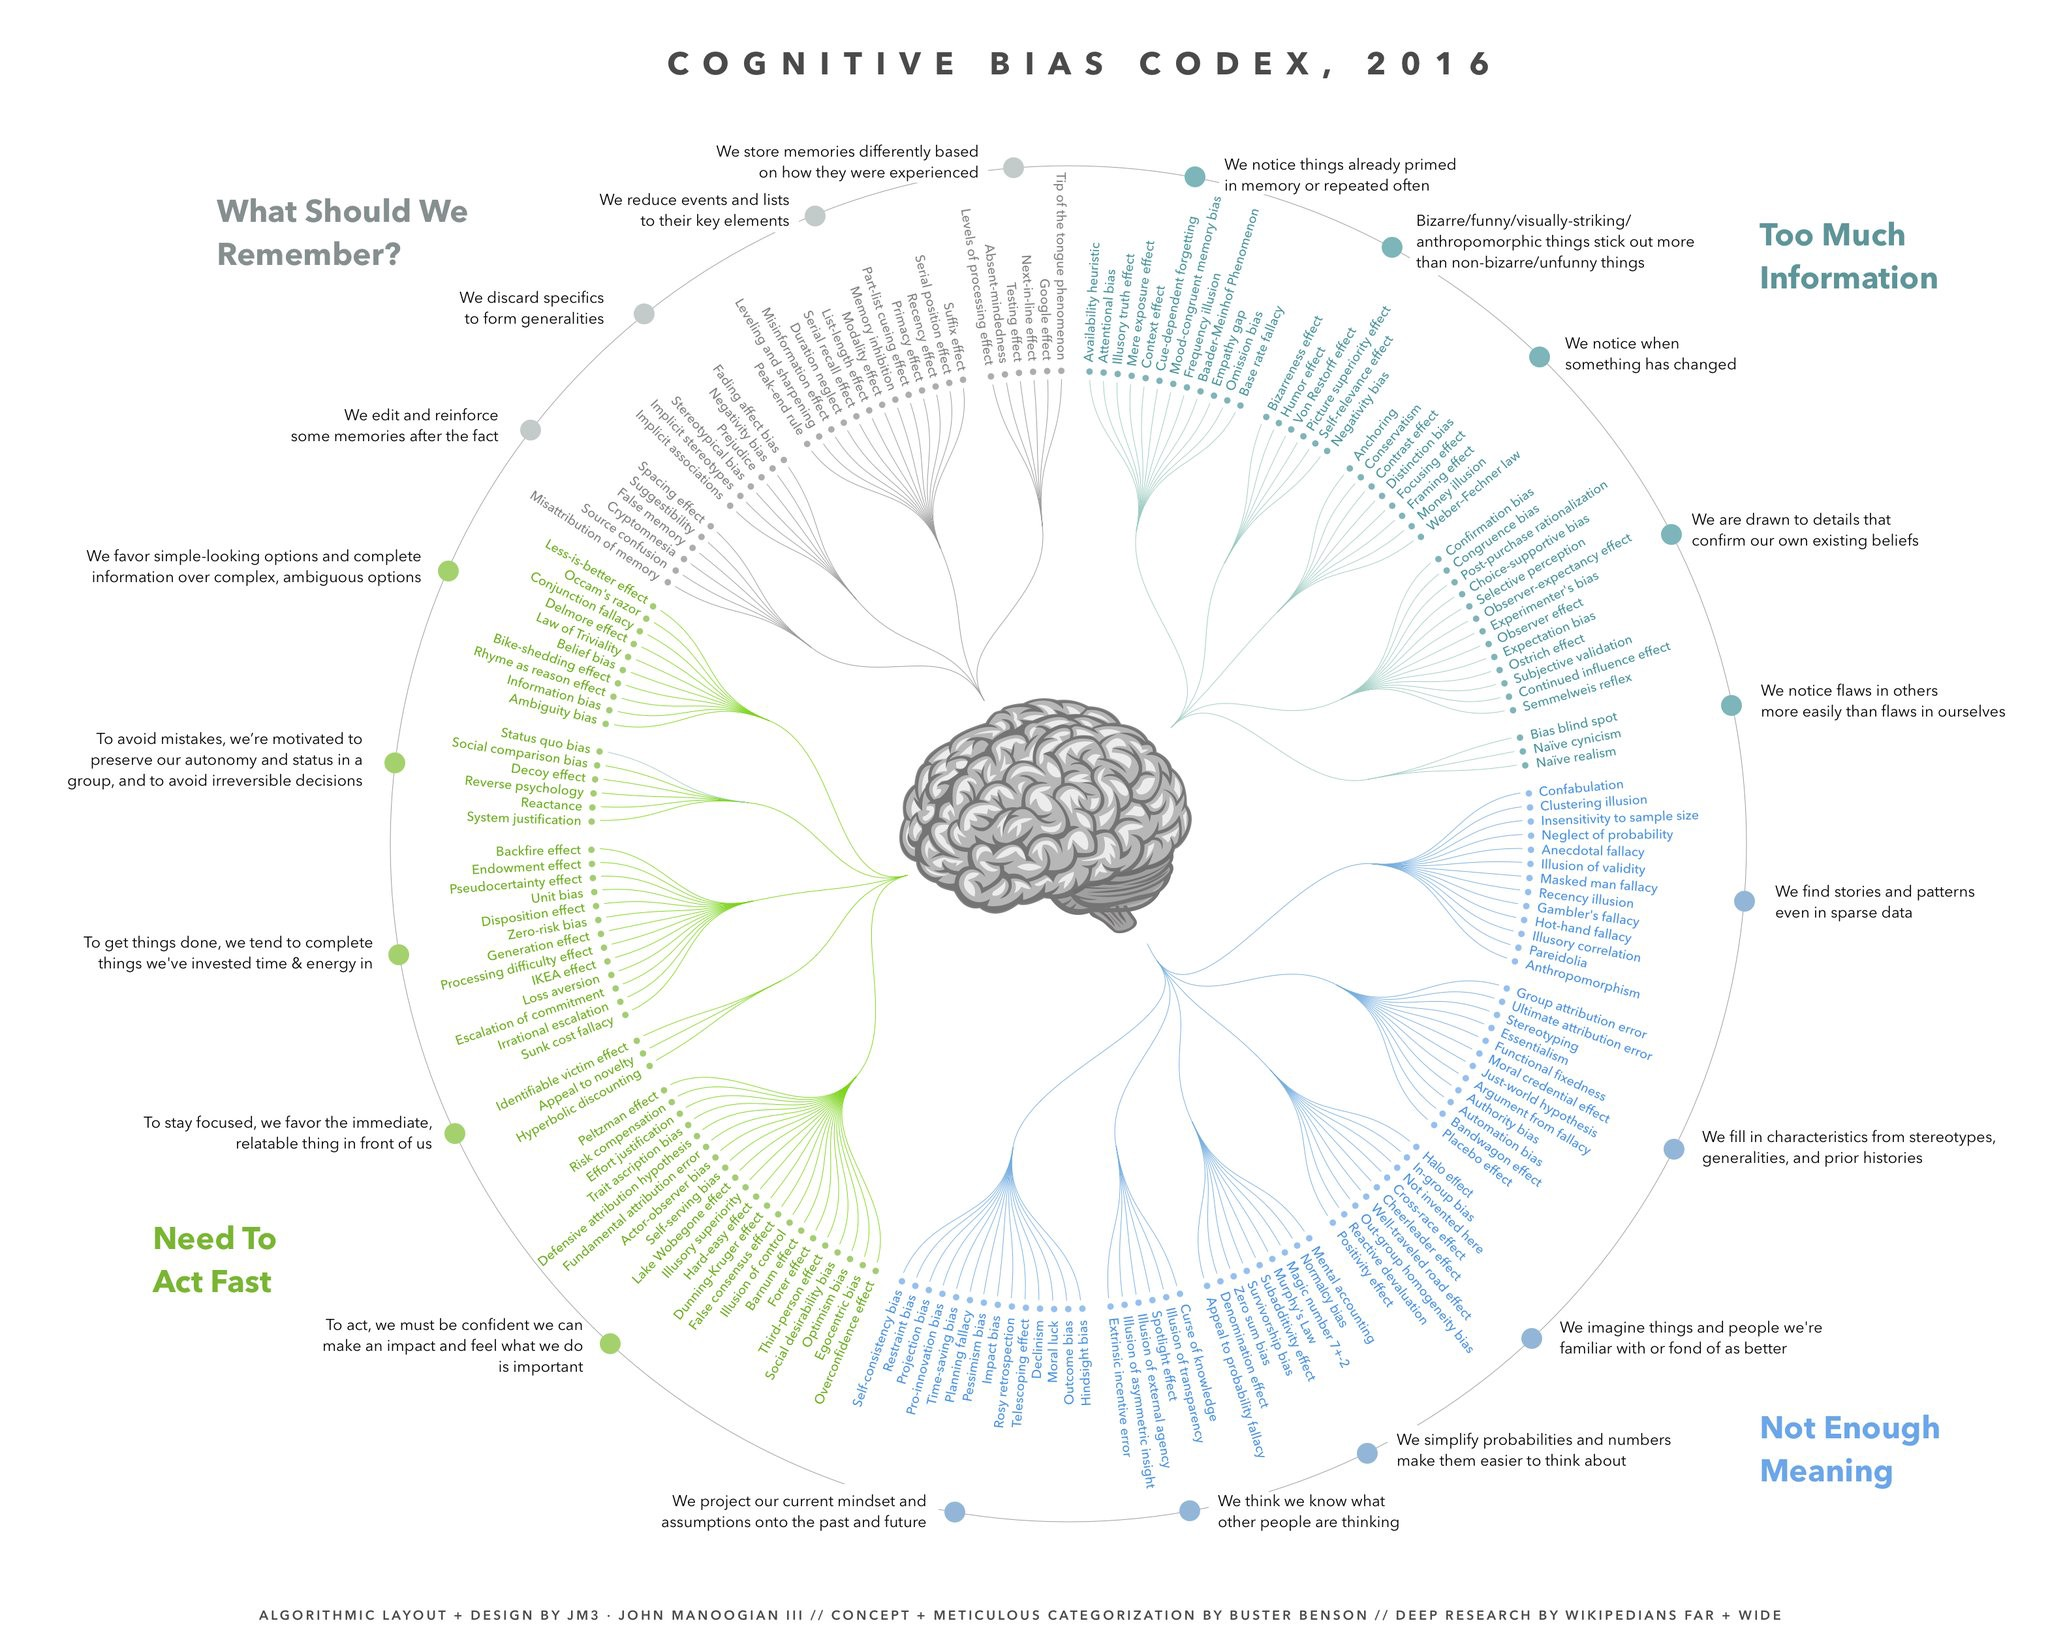 175 classified biases - find your blindspots here!